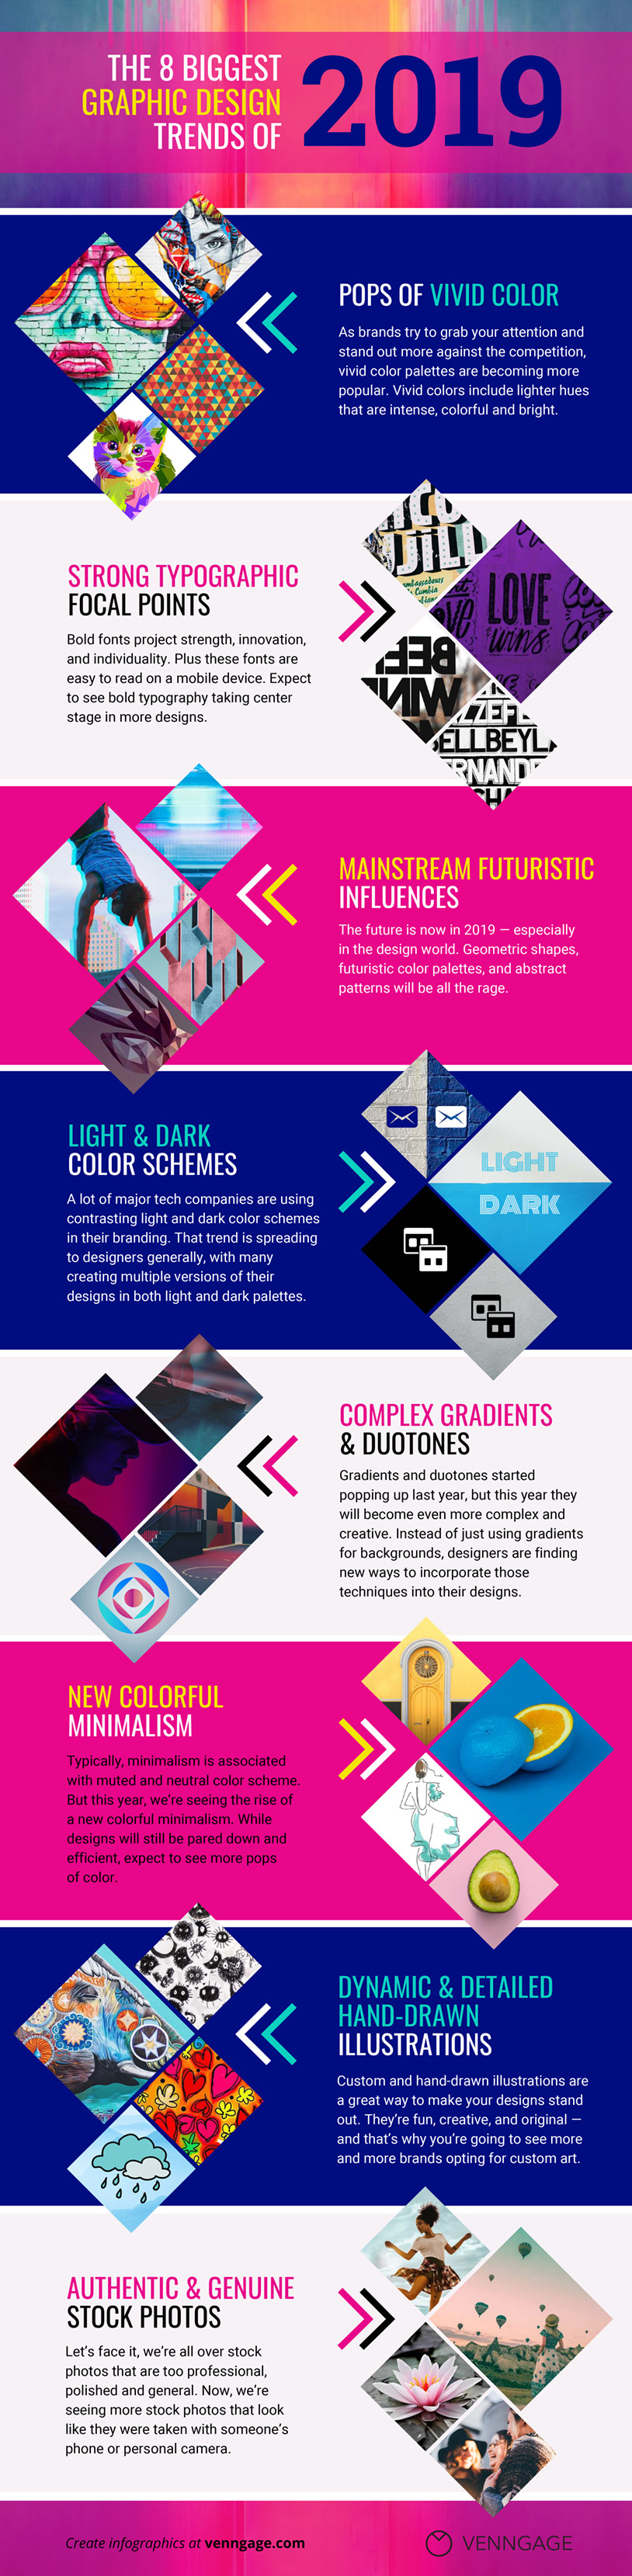 8 New Graphic Design Trends That Will Dominate 20193